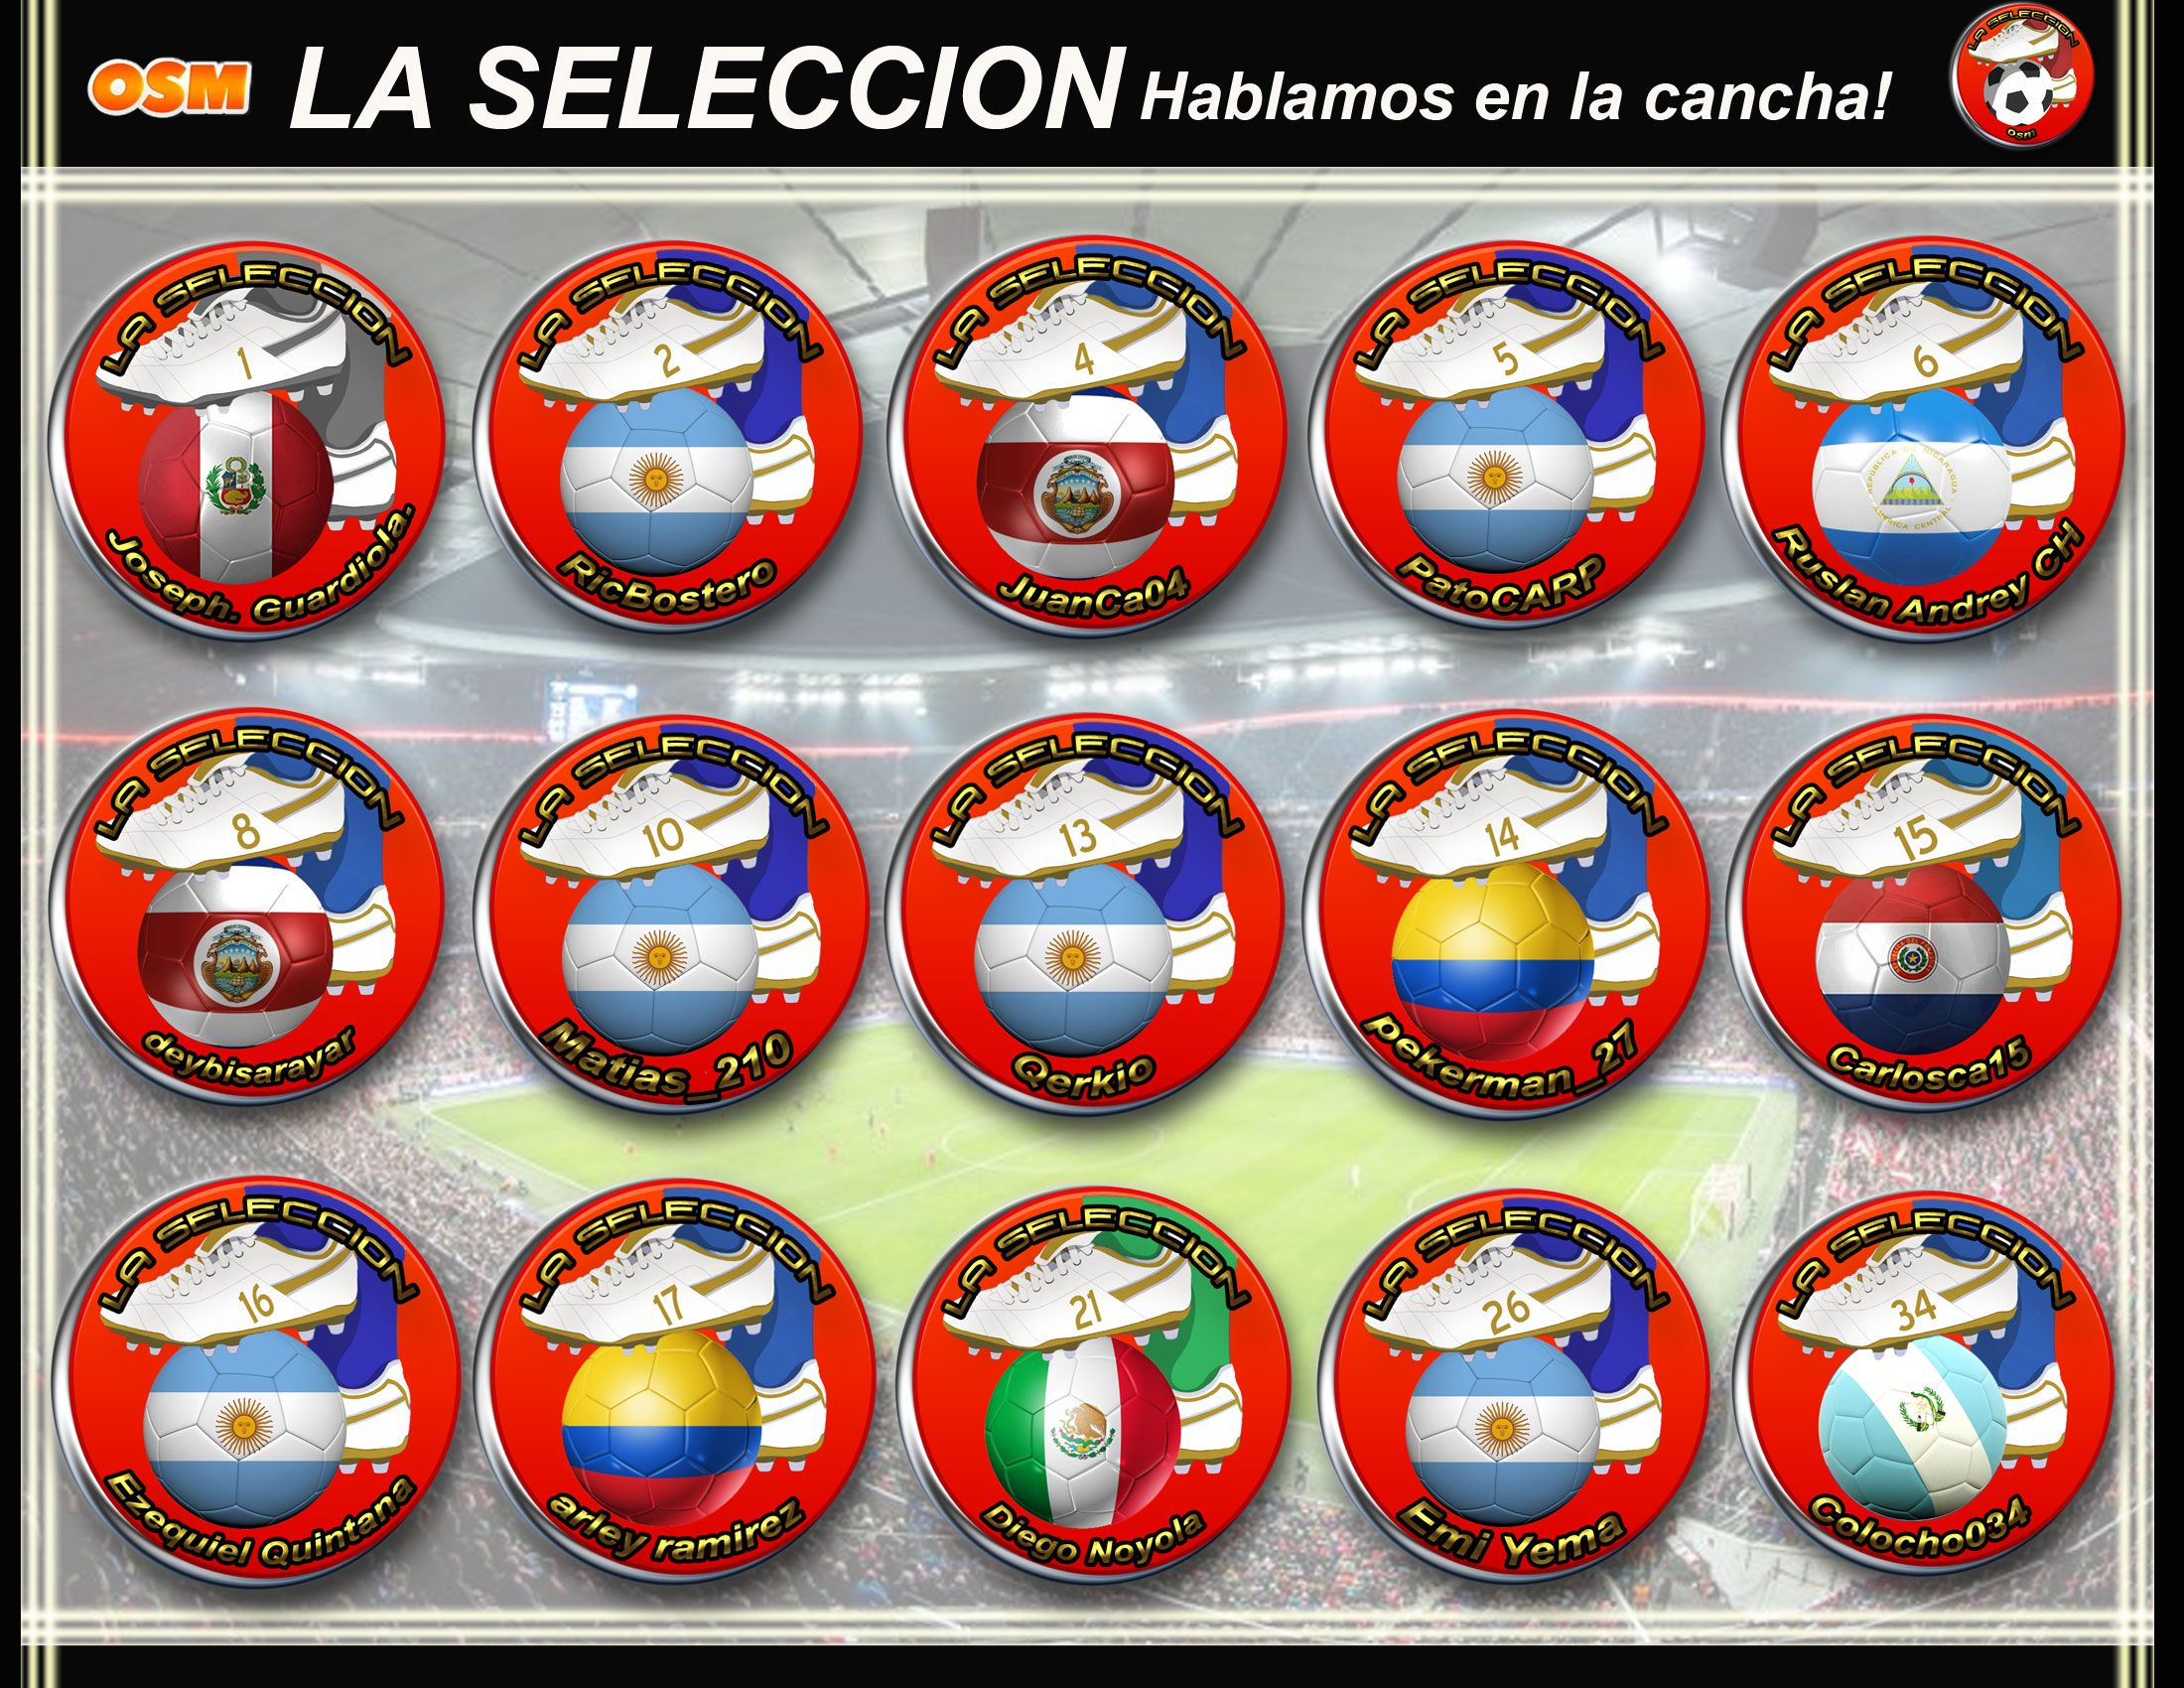 Album-La-Seleccion-2020.jpg